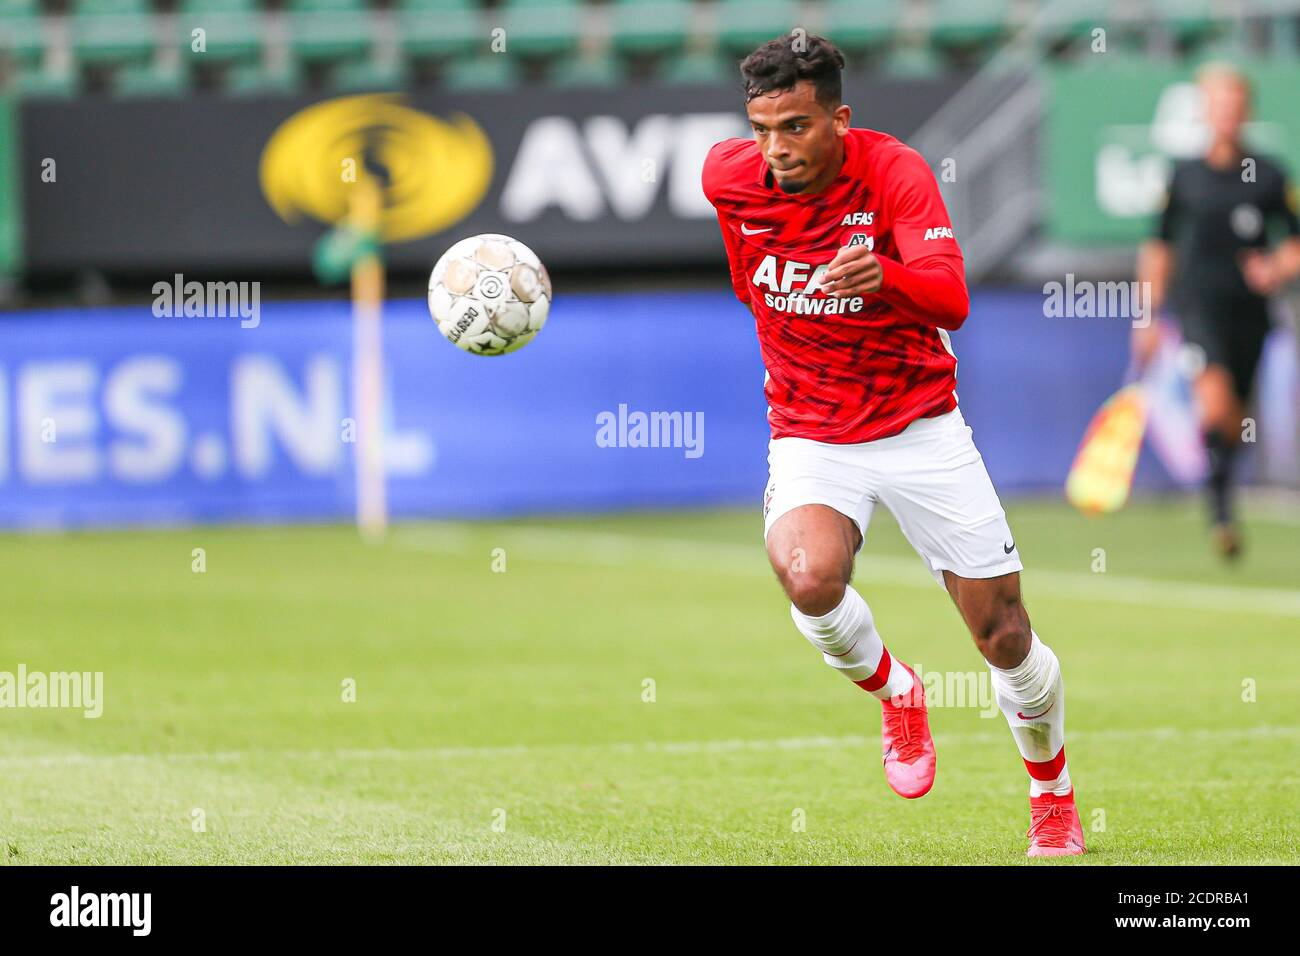 Rotterdam 29 8 20 Cars Jeans Stadion Pre Season 20 21 Ado Den Haag Az Az Player Owen Wijndal Credit Pro Shots Alamy Live News Stock Photo Alamy